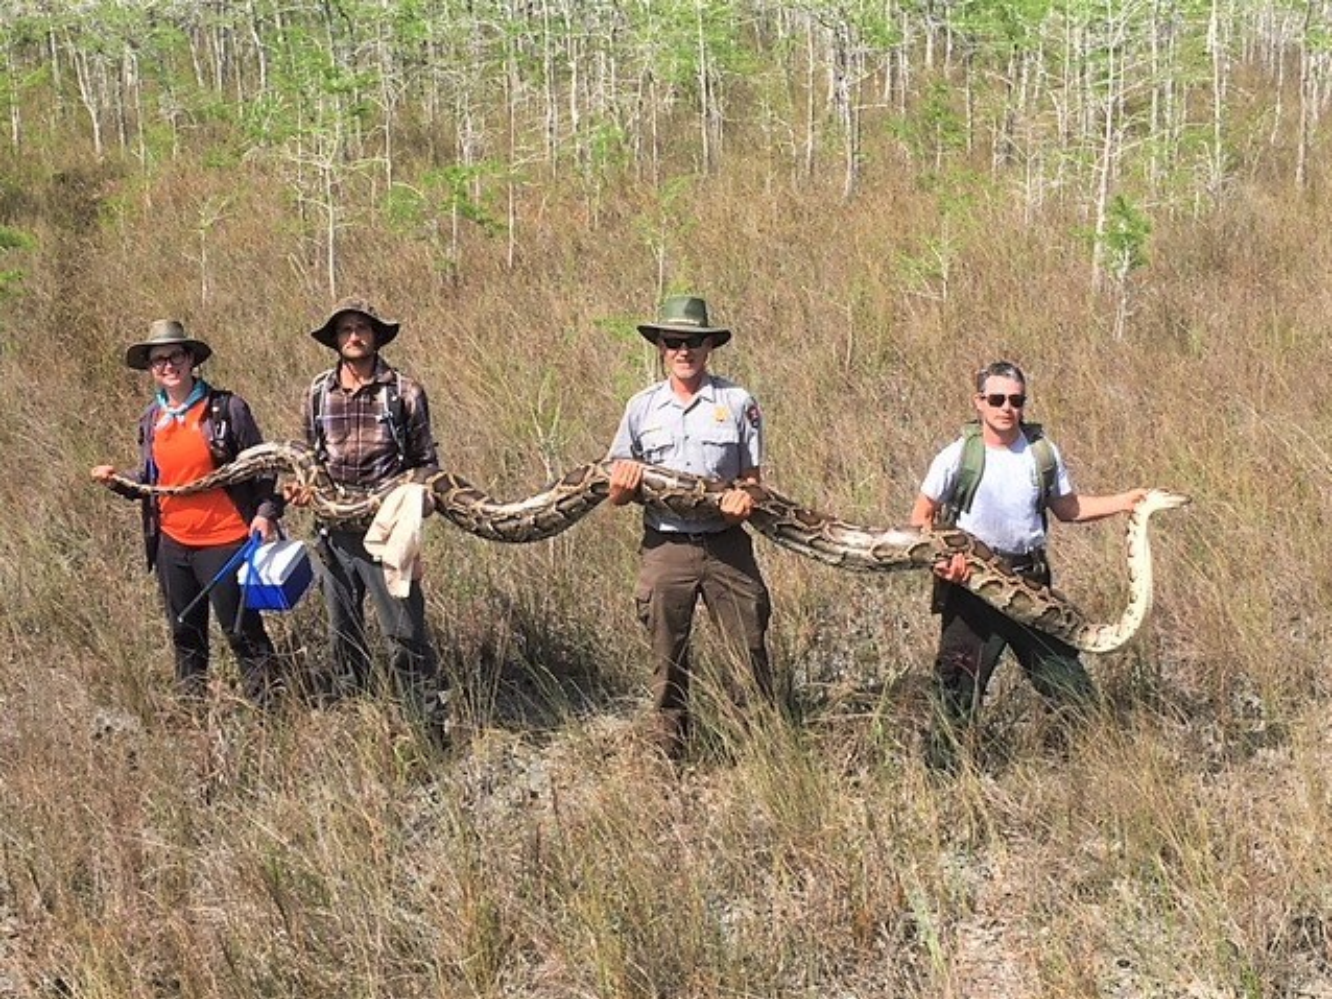 Officials from Florida's Big Cypress National Preserve hold a massive 17-Foot python